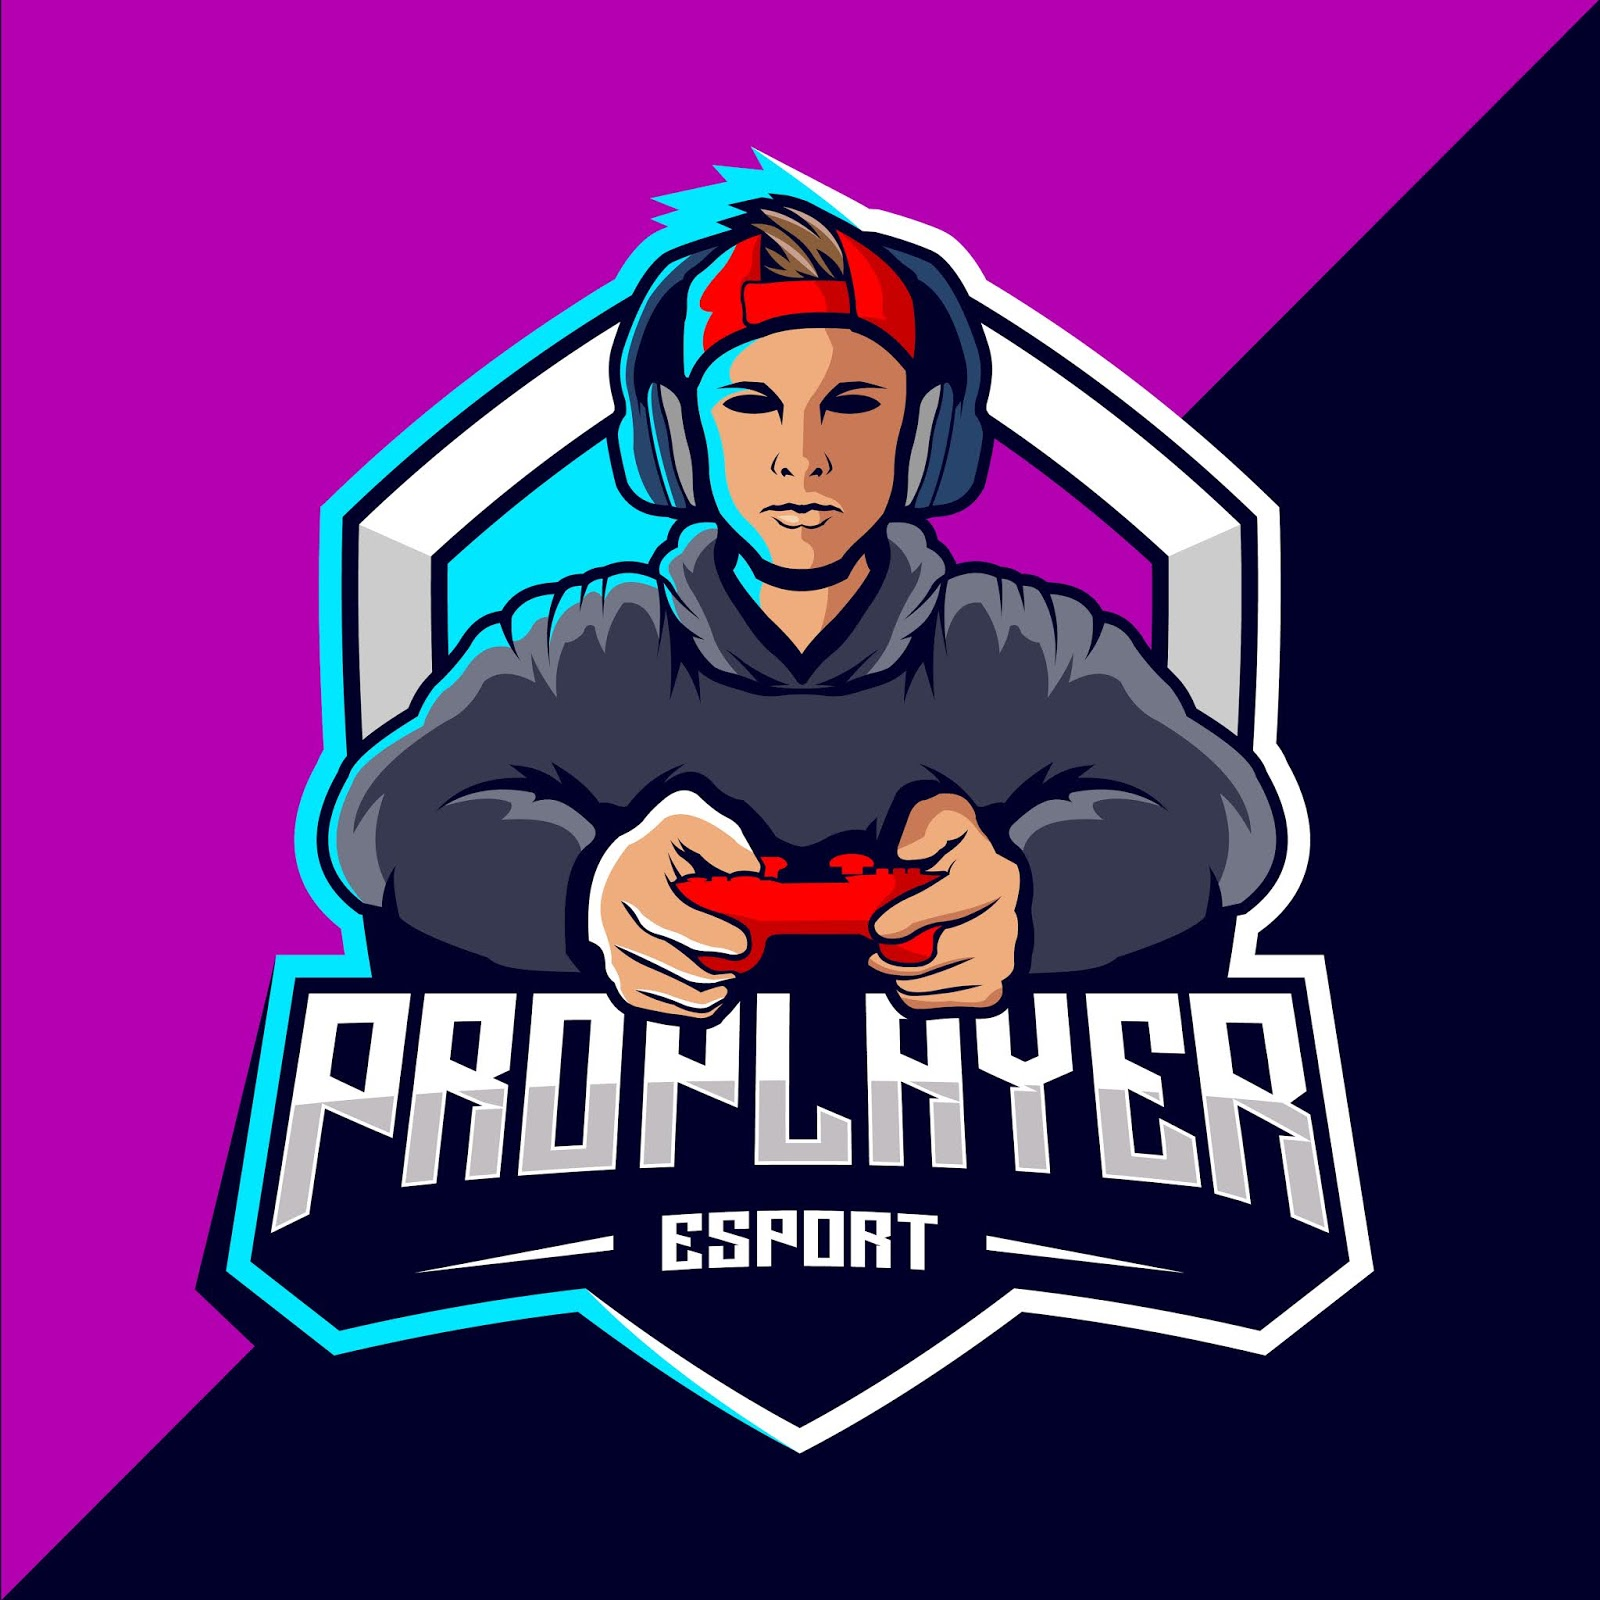 Pro Player Esport Game Logo Design Free Download Vector CDR, AI, EPS and PNG Formats